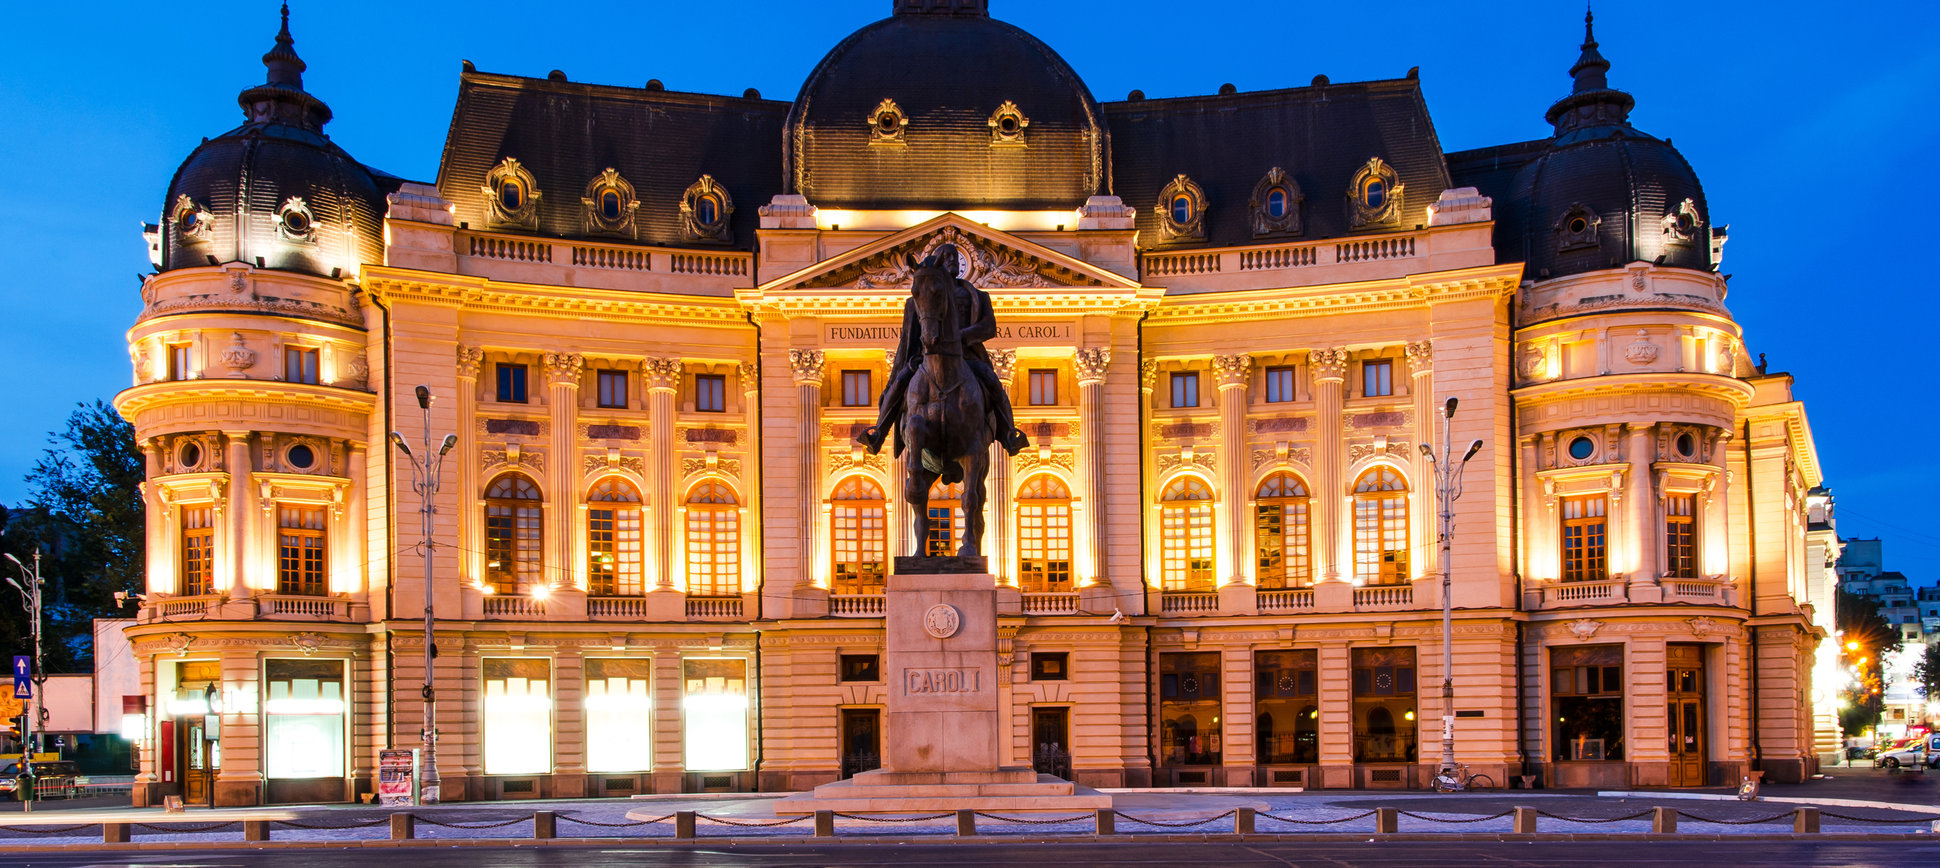 The 10 cheapest european cities to stay in a five star hotel for 5 star hotels in